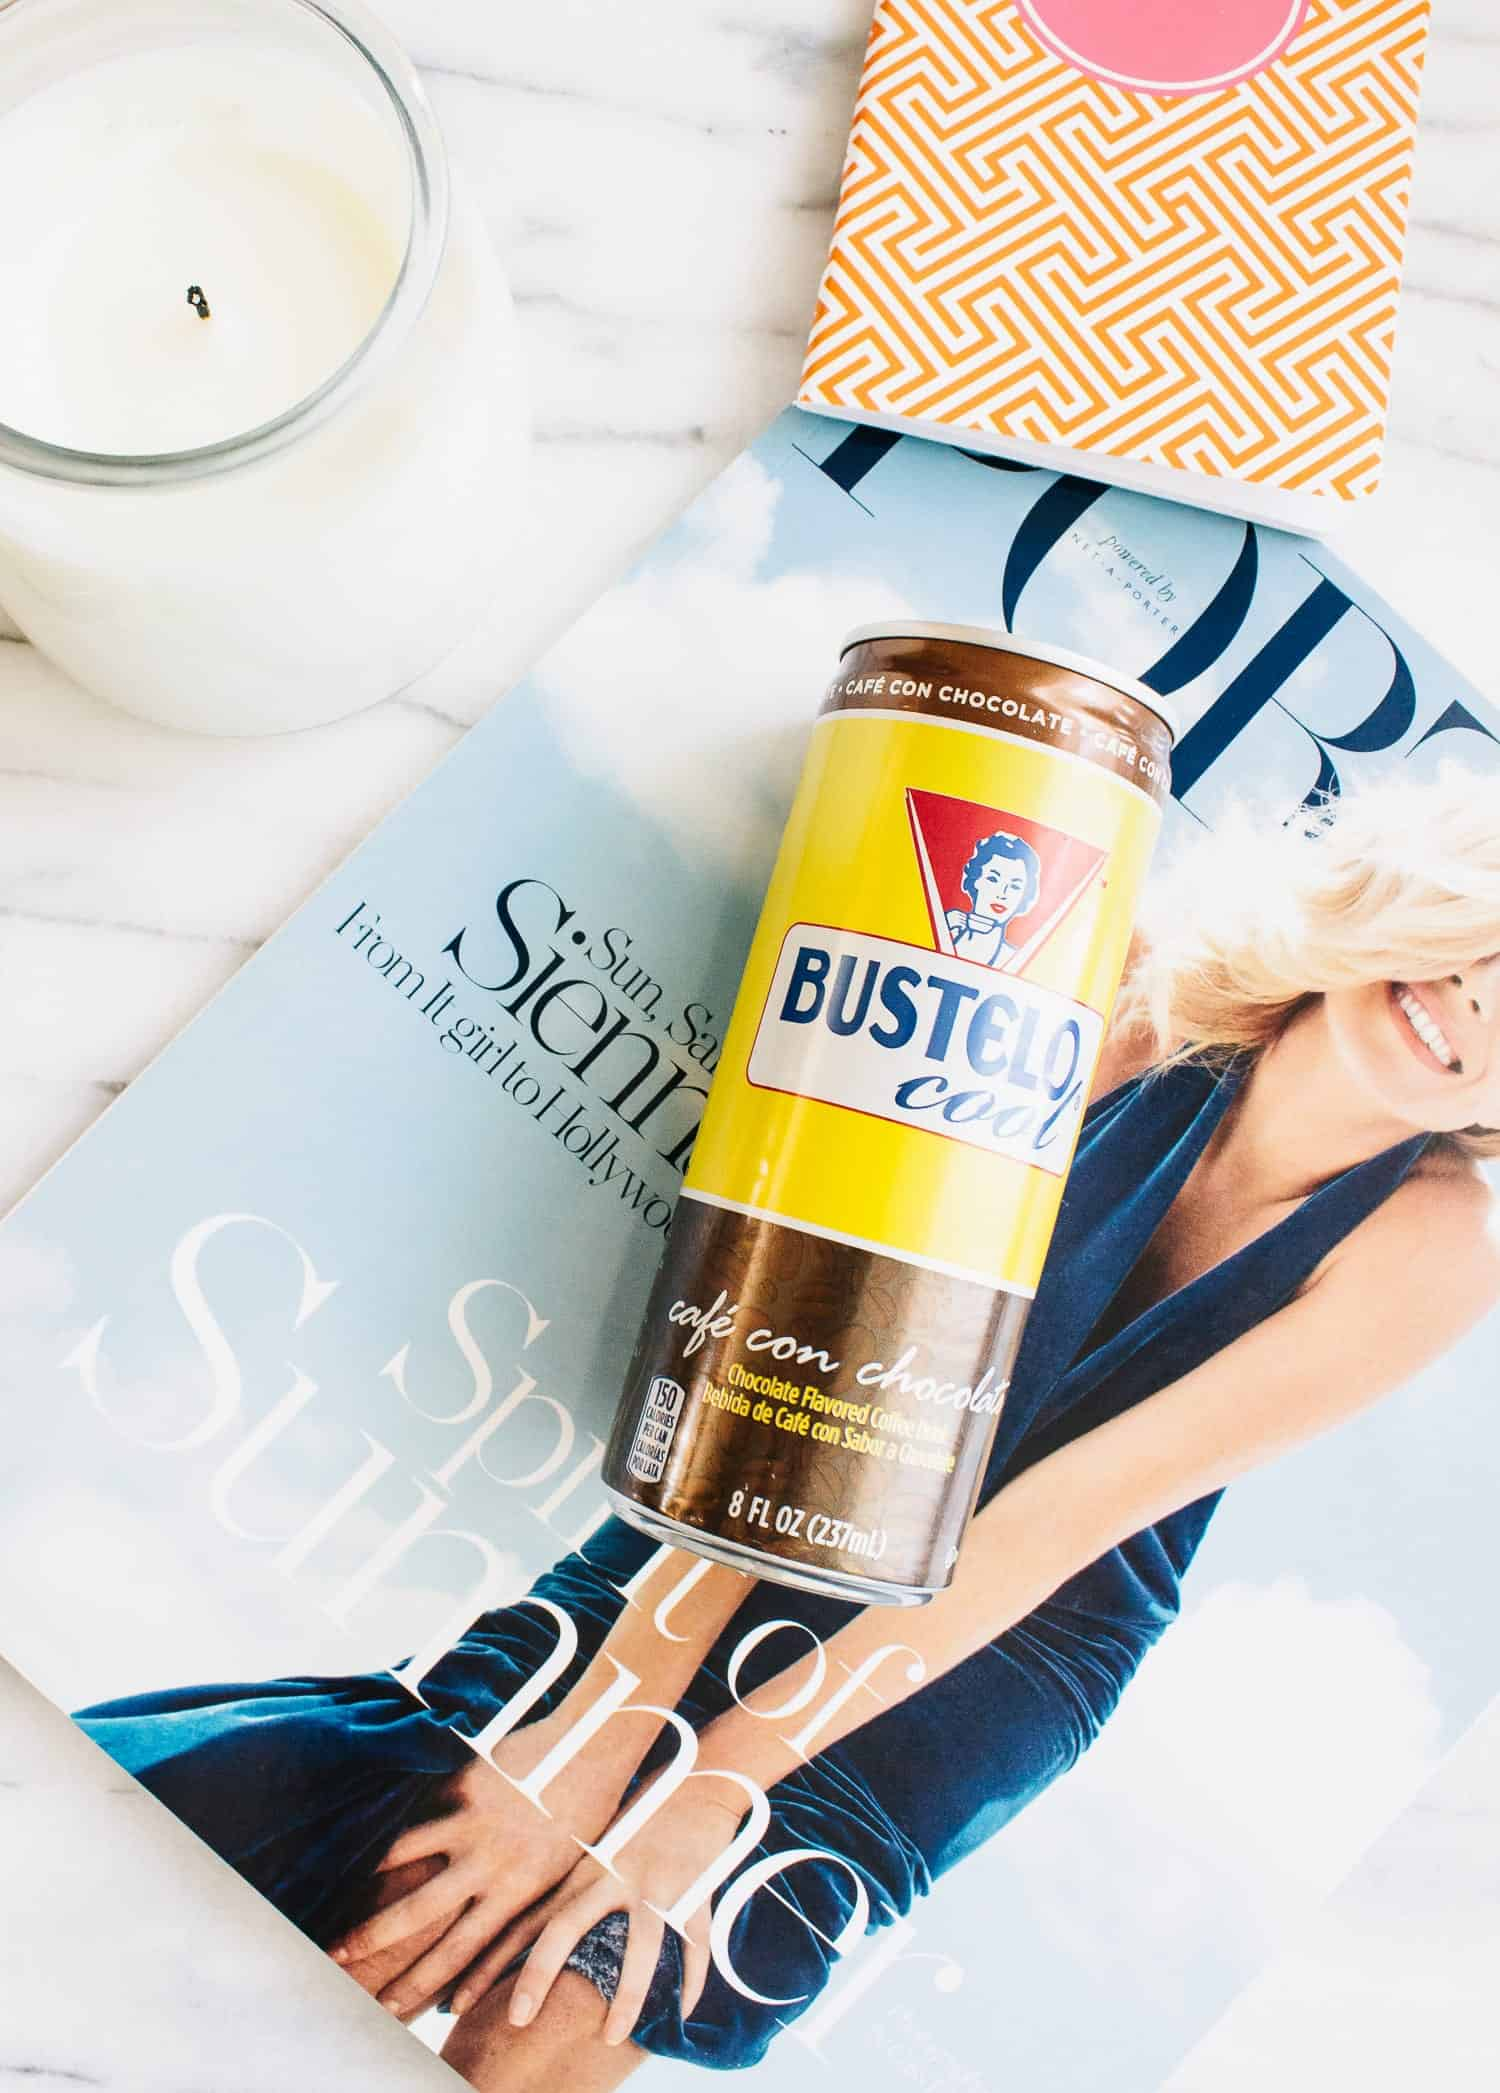 bustelo cool iced coffee cafe con chocolate